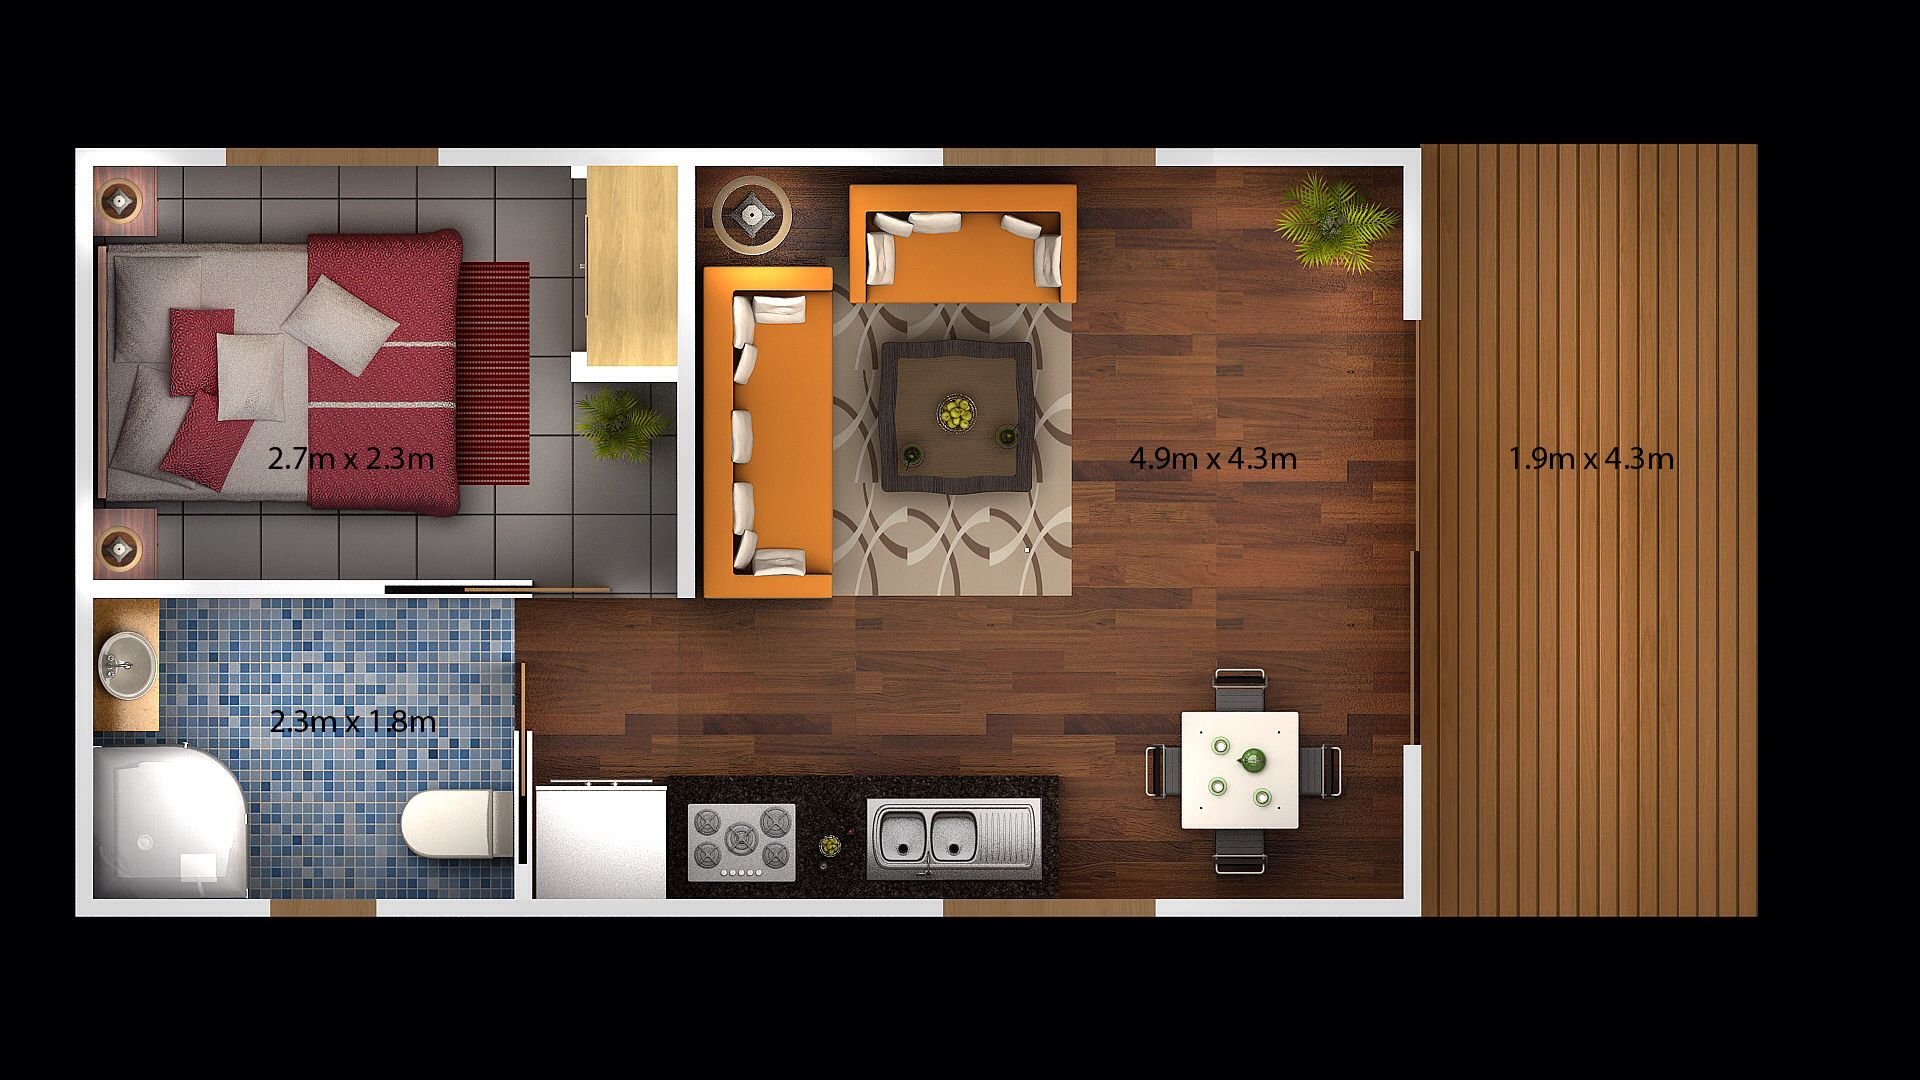 Pin By Eloria Estrada On Garage Conv Garage Conversion Granny Flat Garage Conversion Apartment Floor Plans